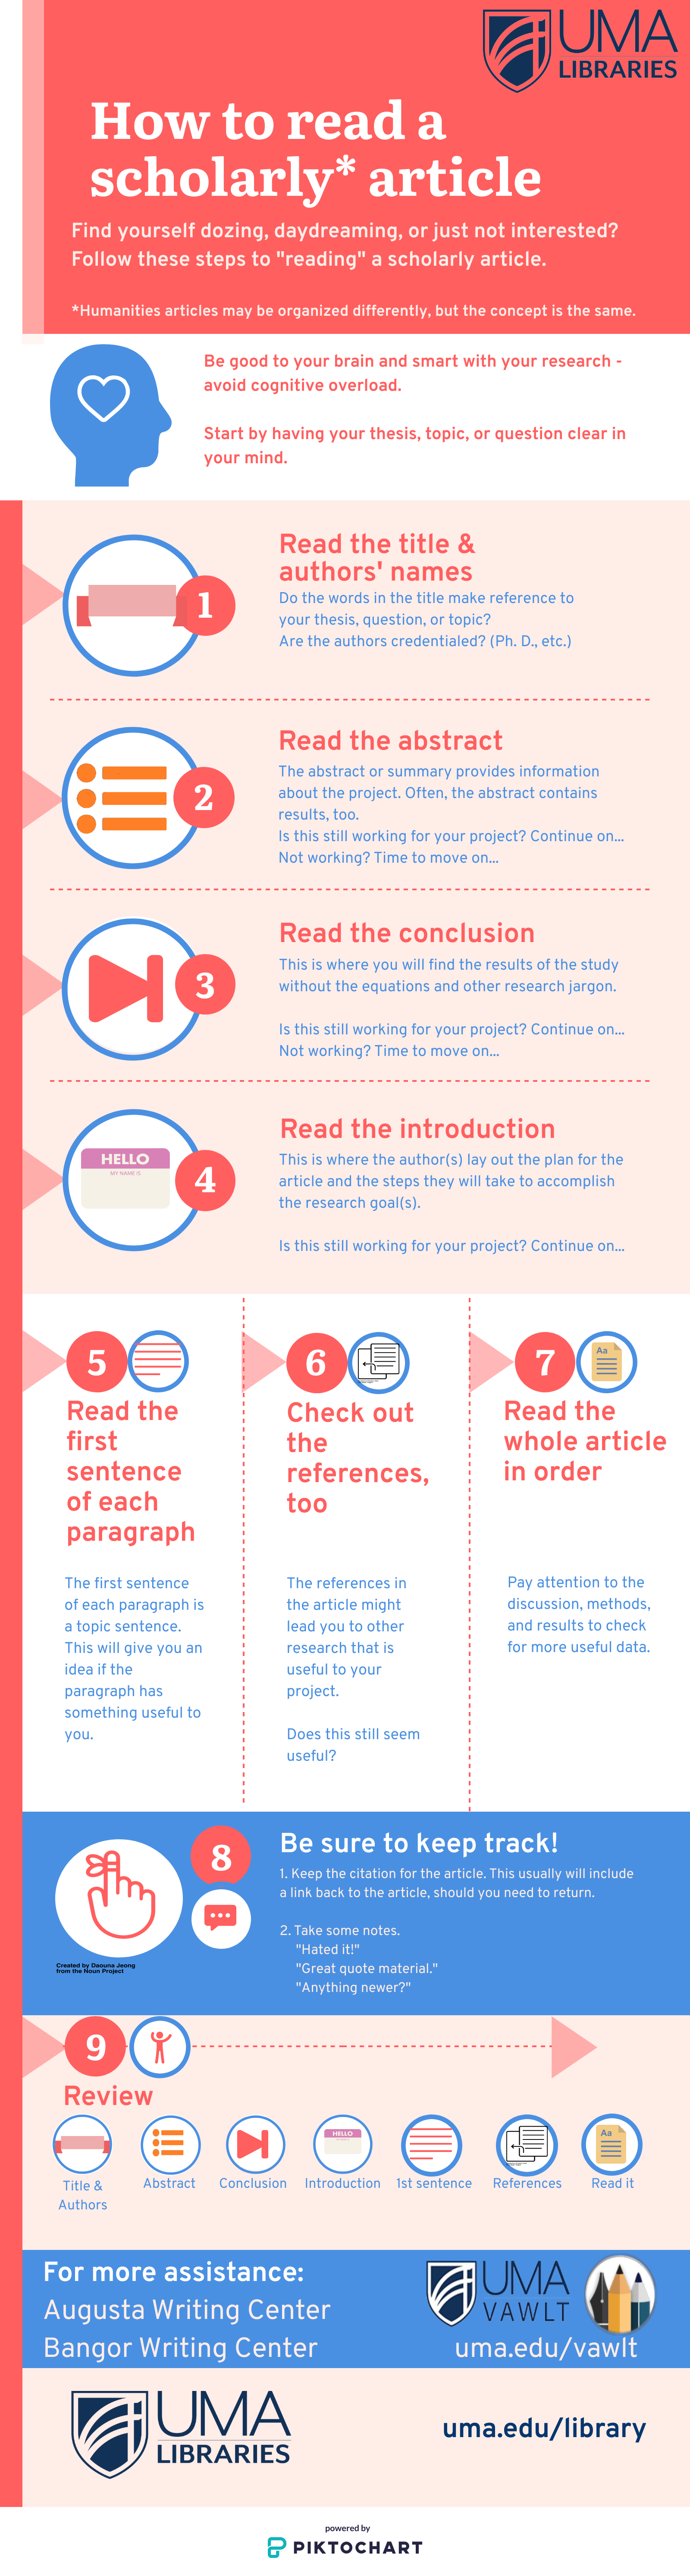 Infographic - How to read a scholarly article